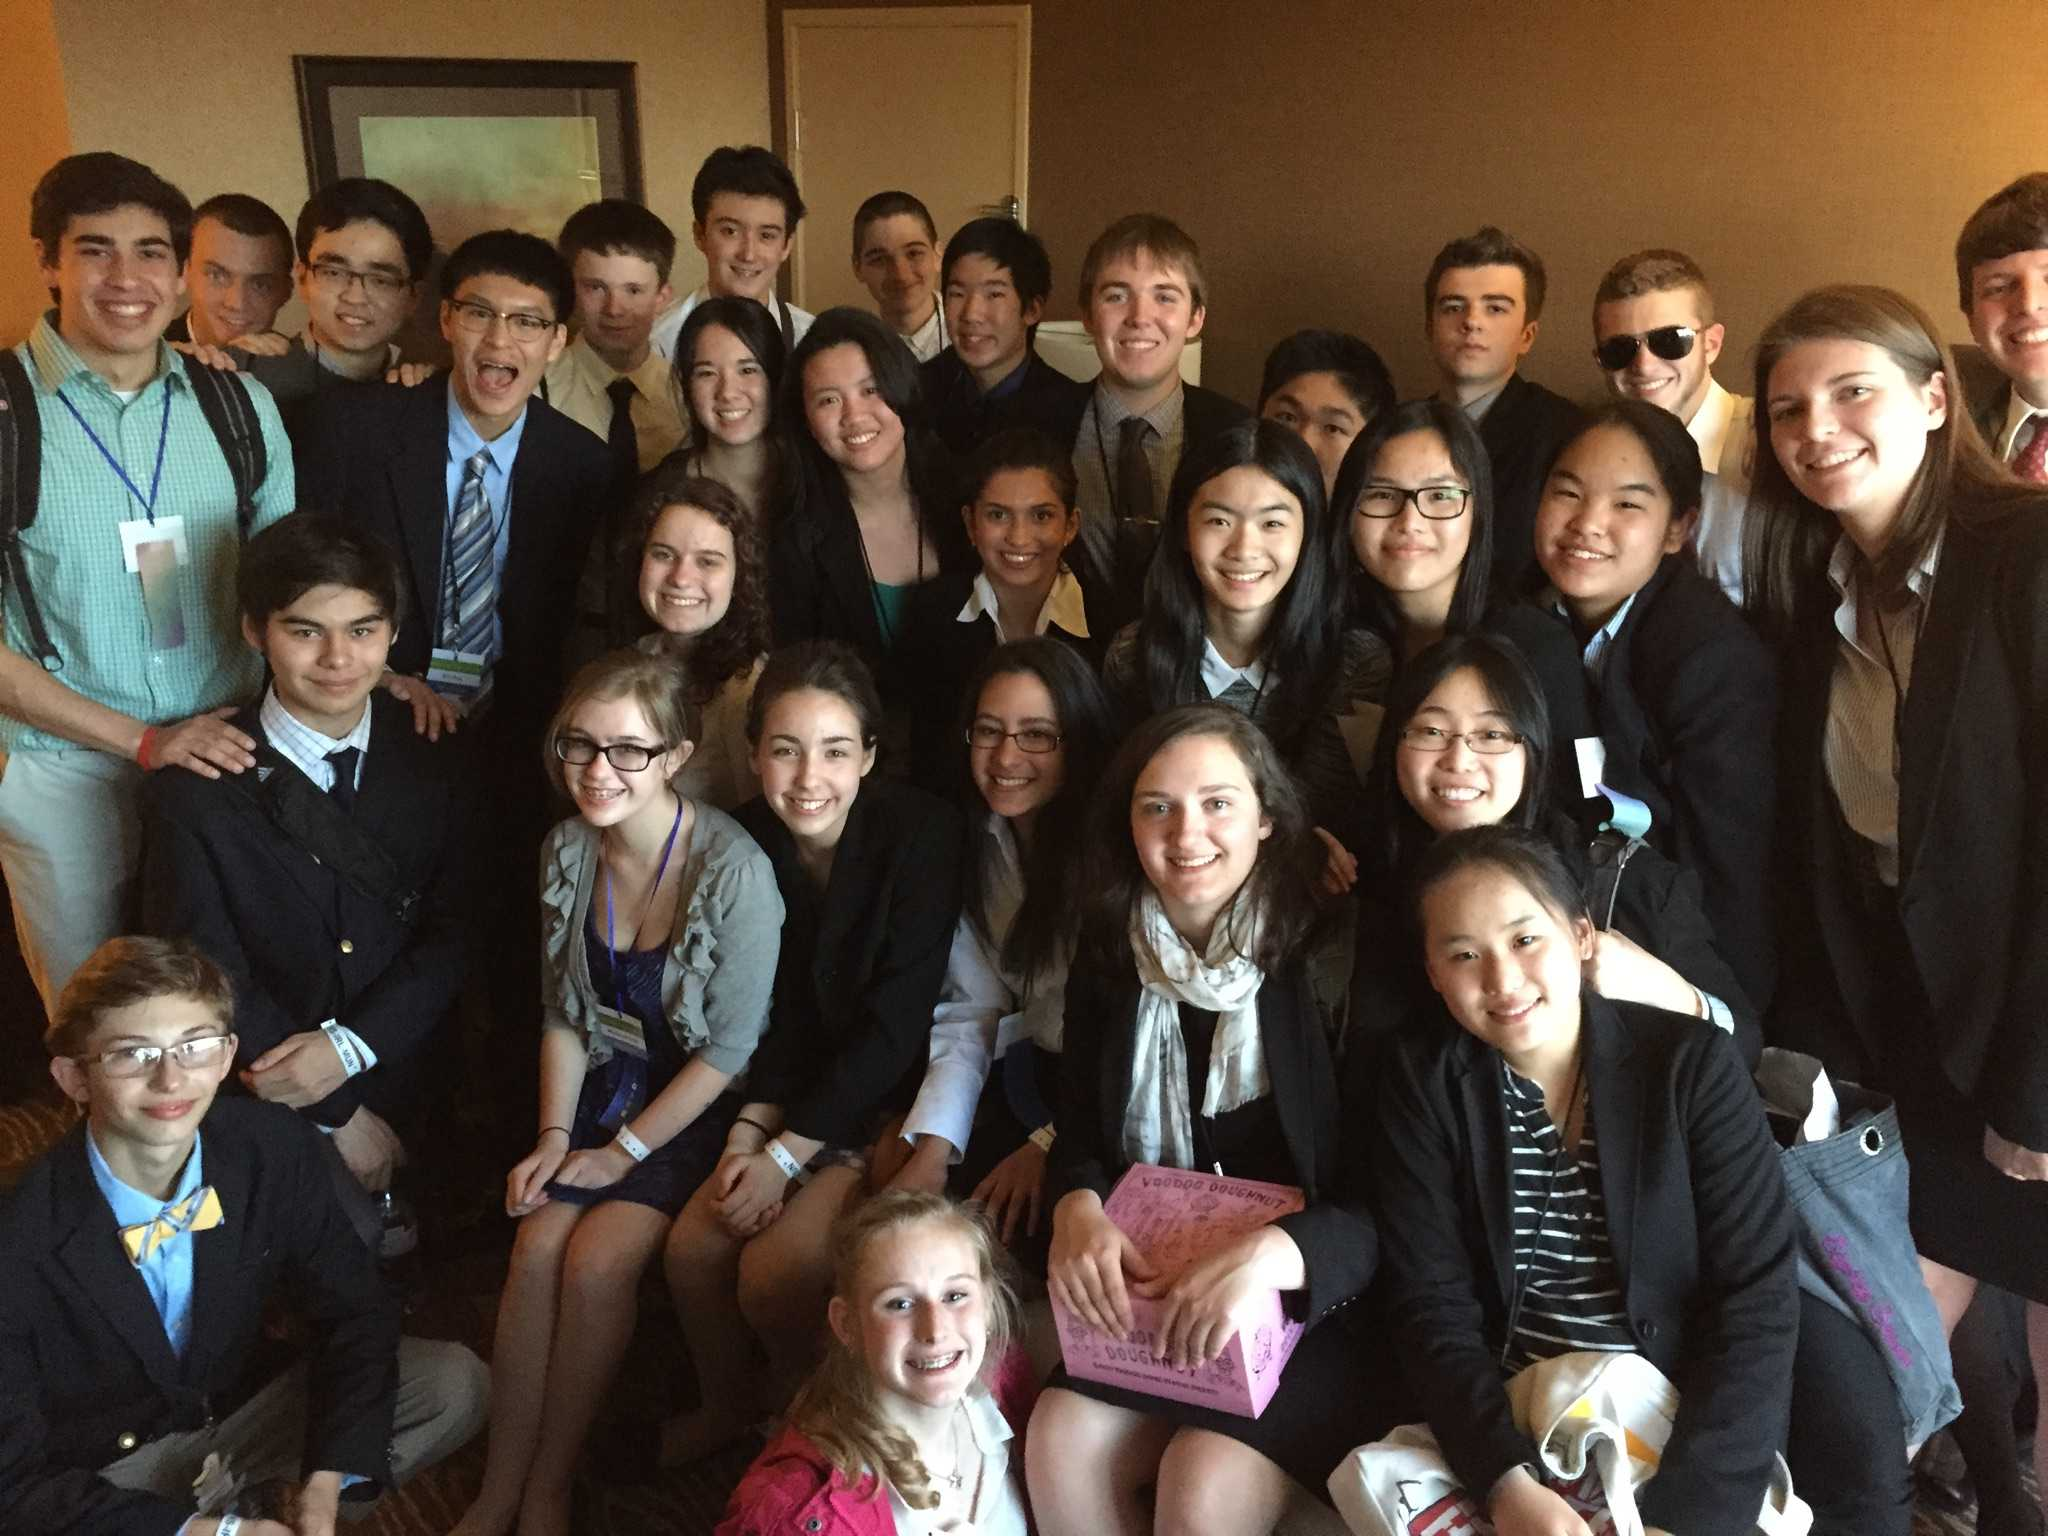 Model United Nations participants prepare for a conference held in Eugene, April 9-11. Students represented either Sierre Leone or Australia in topics that are currently having an effect on the countries' citizens.